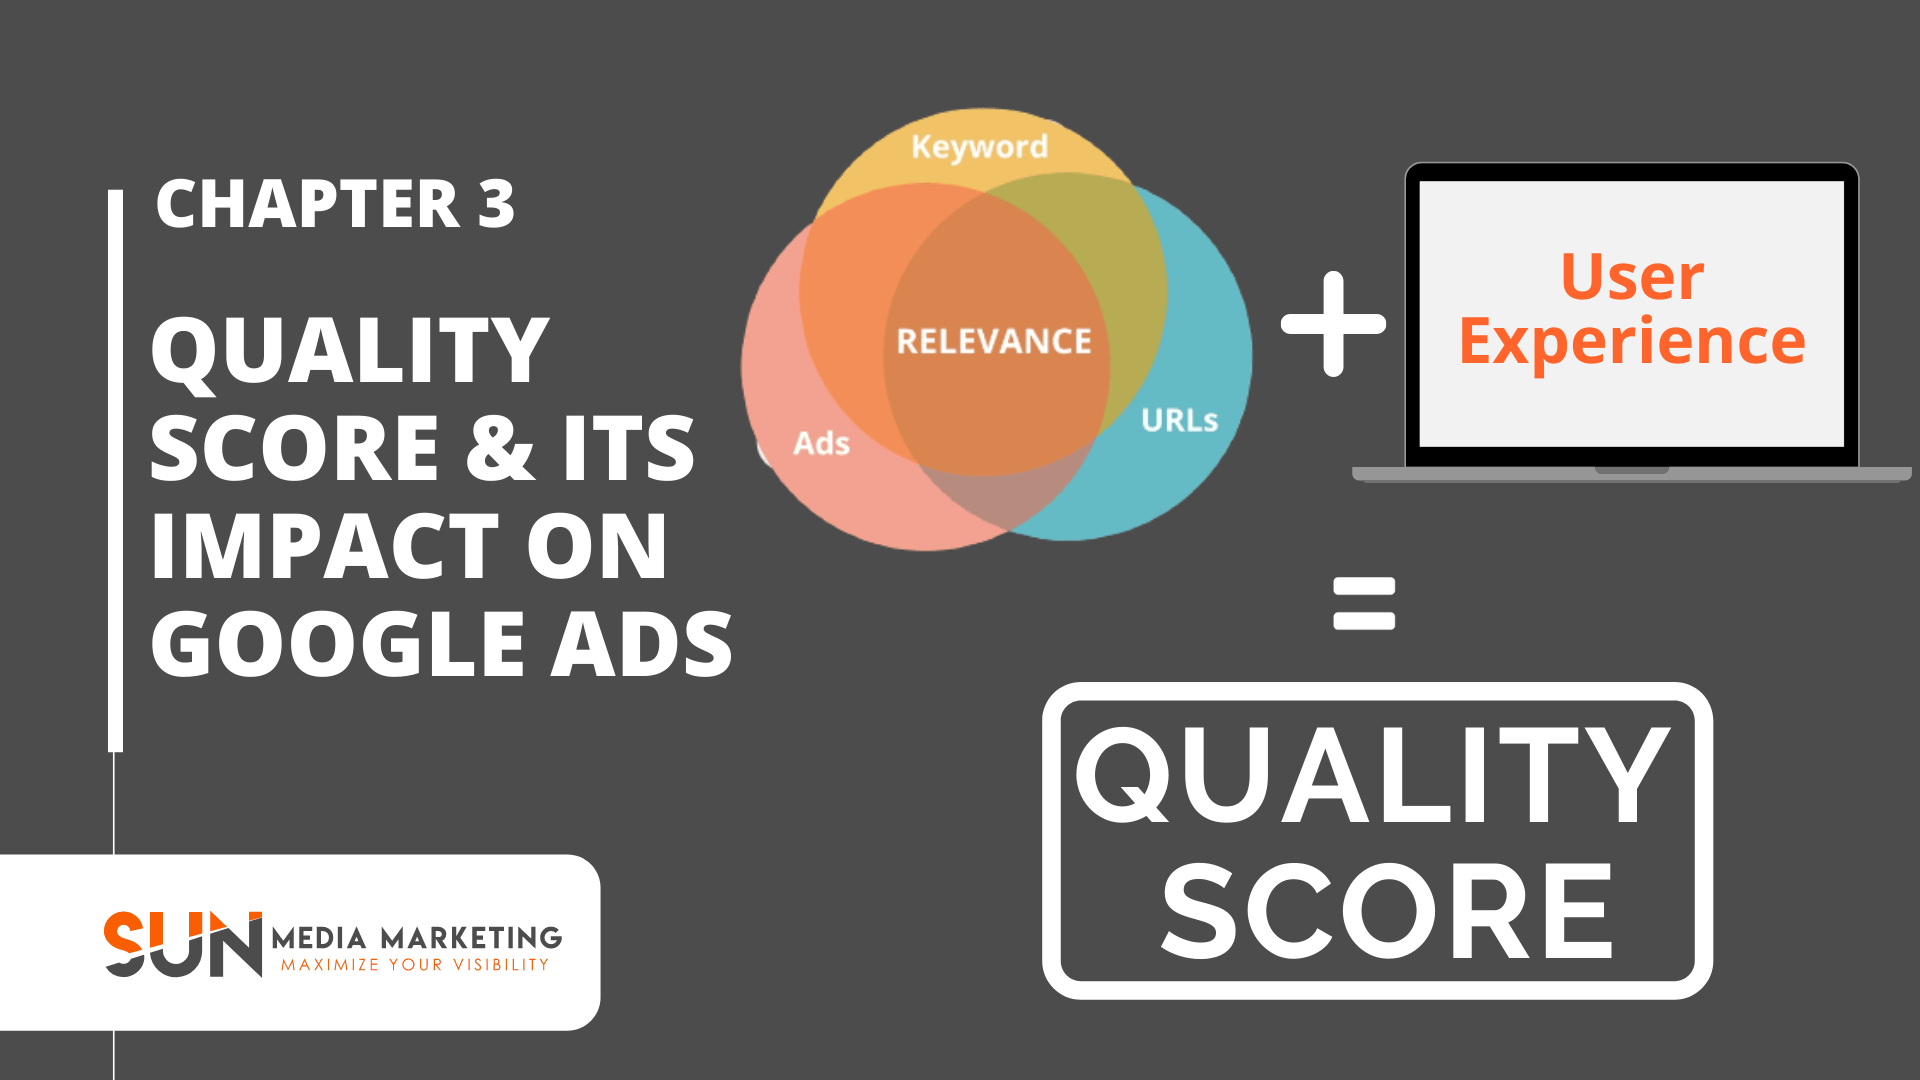 Quality Score & Its Impact on Google Ads